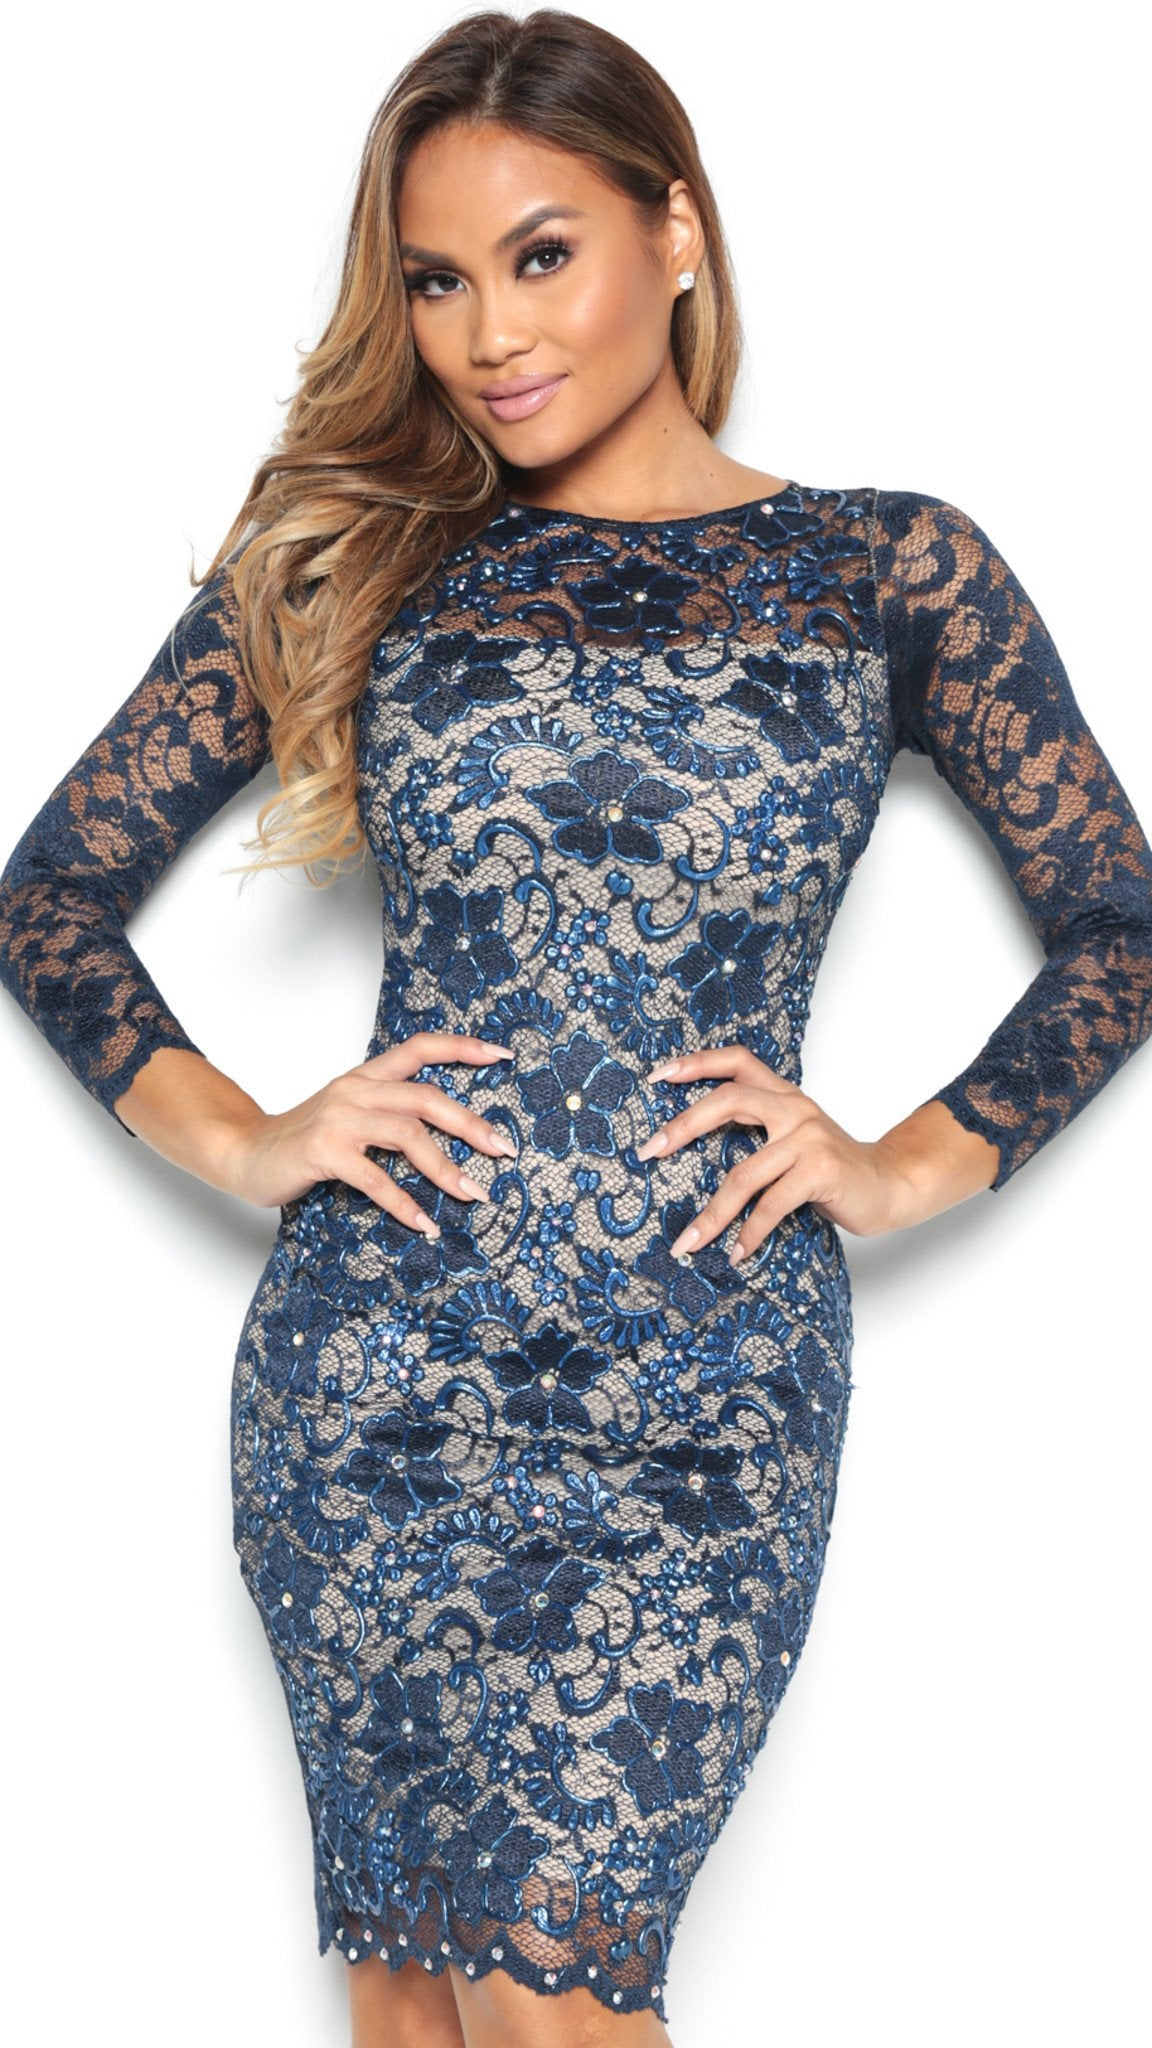 MIDI LACE DRESS IN NAVY